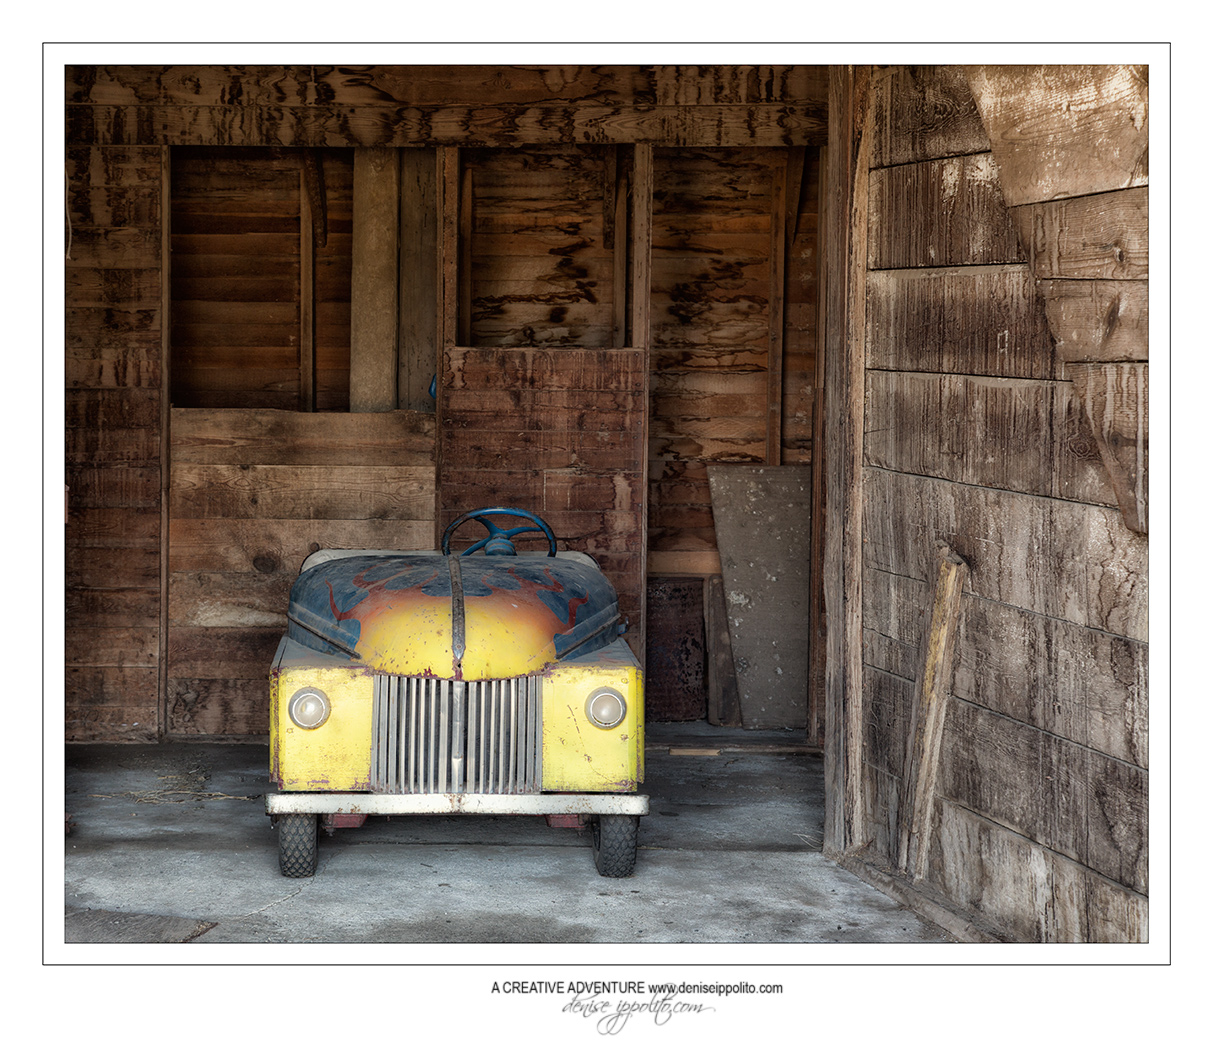 Old Box Car, photographed by Denise Ippolito 2015